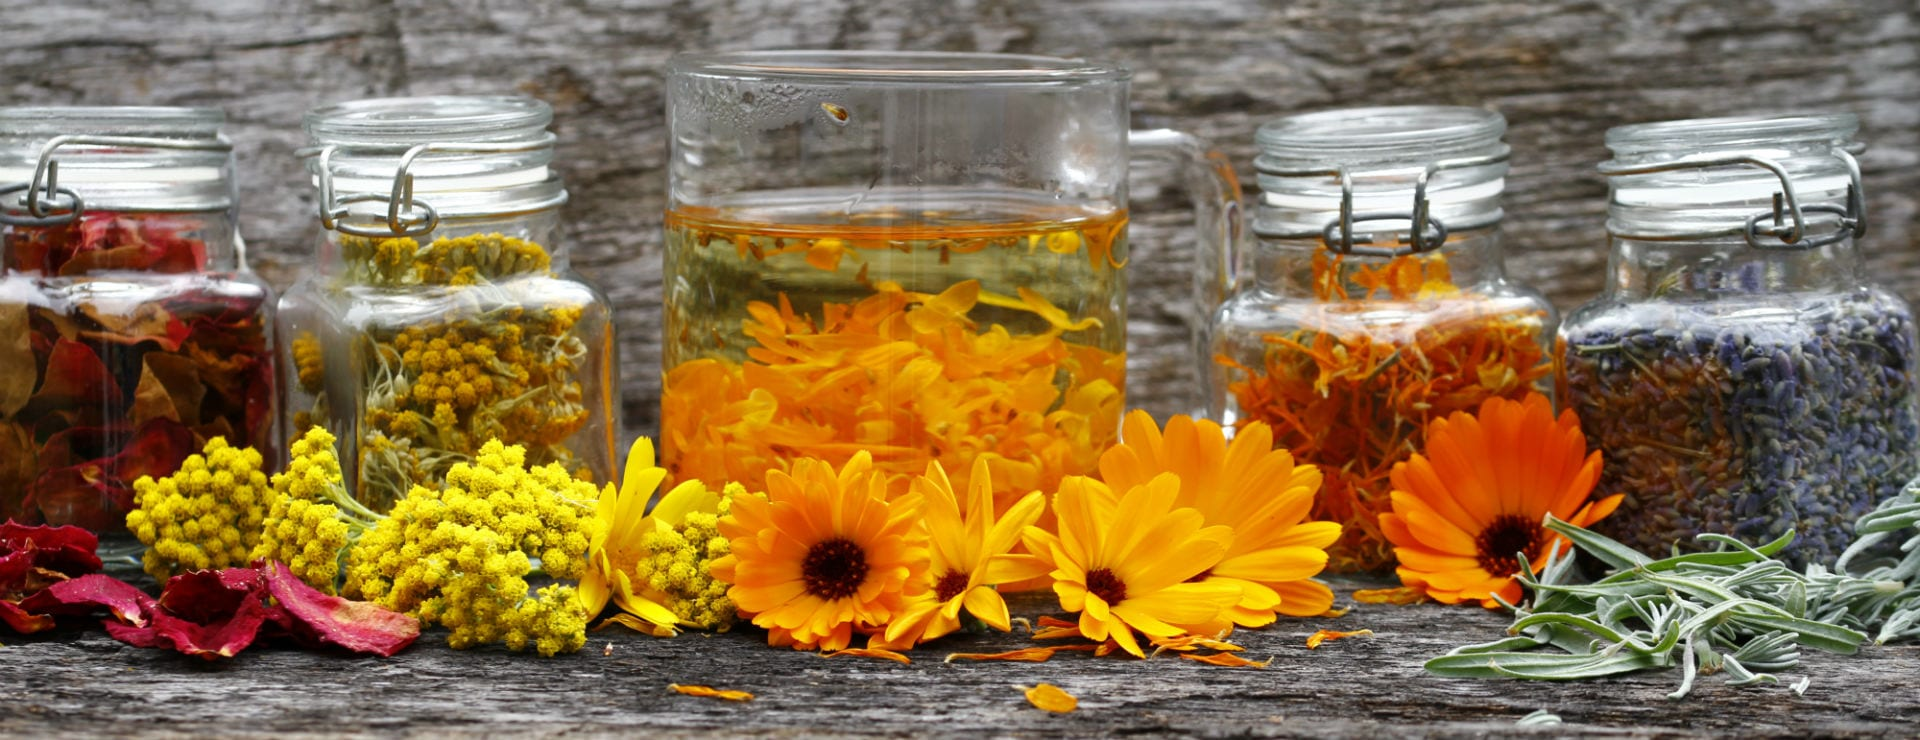 calendula petals in jars